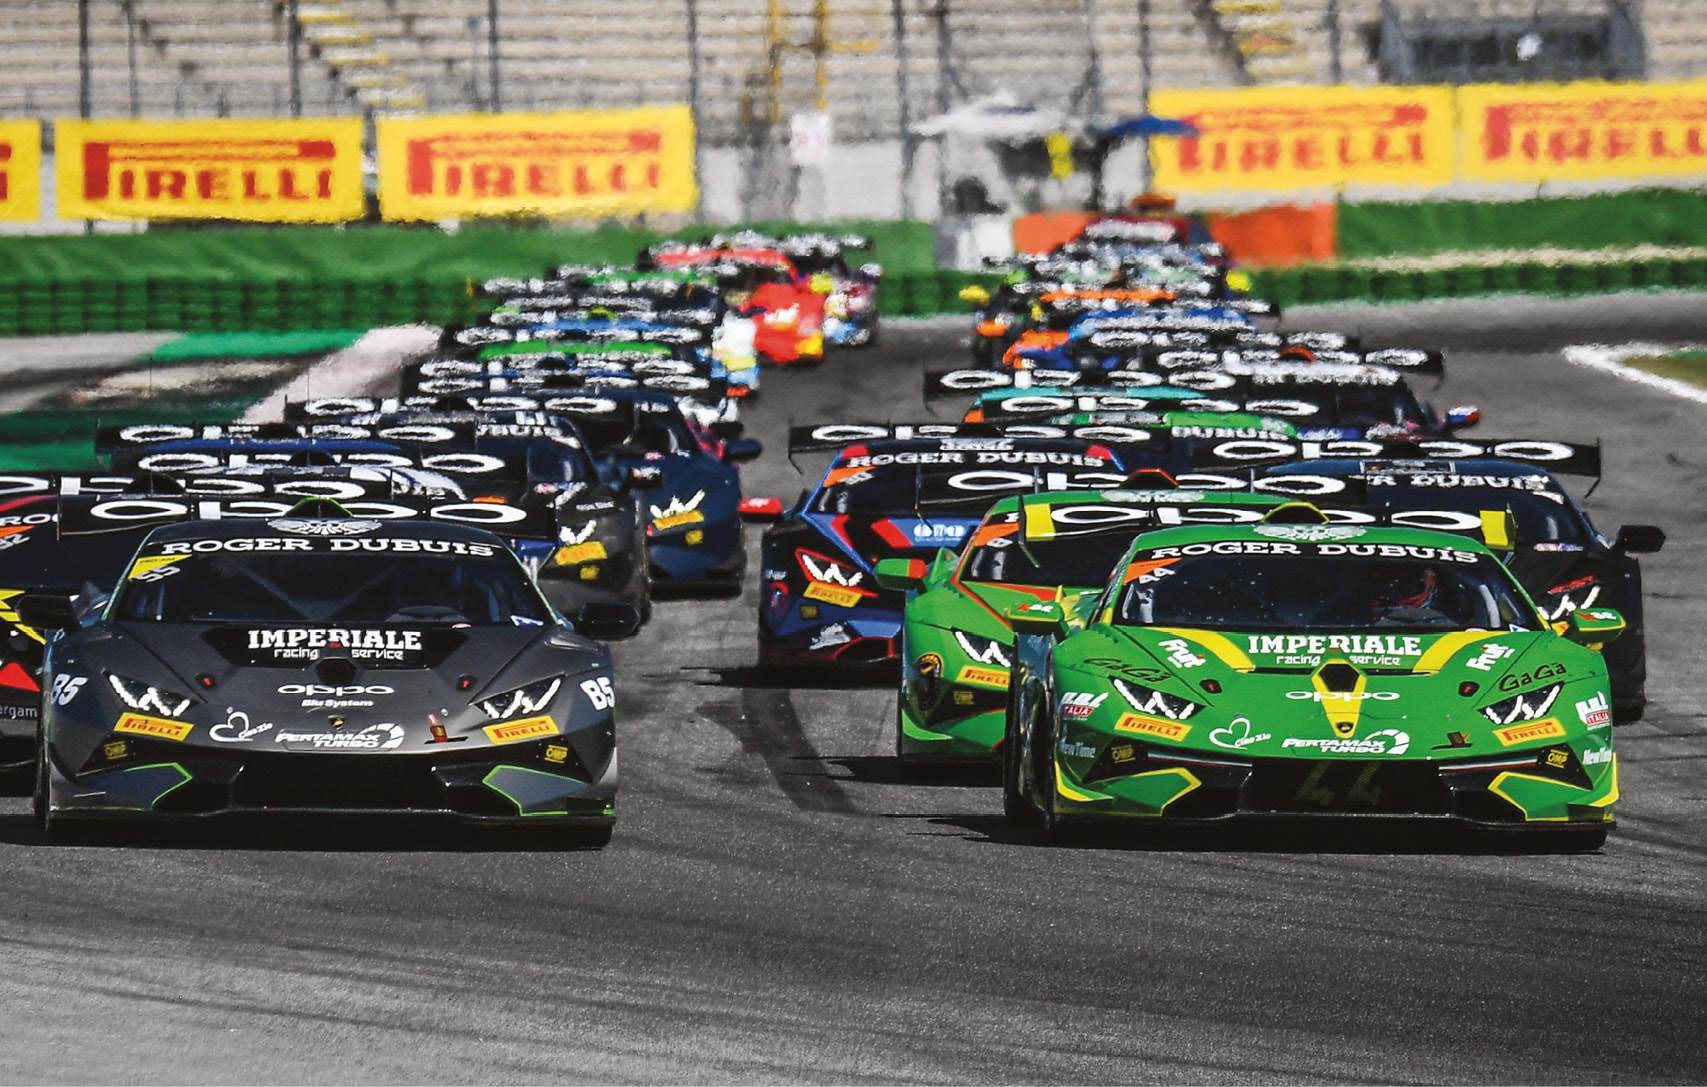 The Super Trofeo has spawned series around the world, with the European version running big, competitive grids